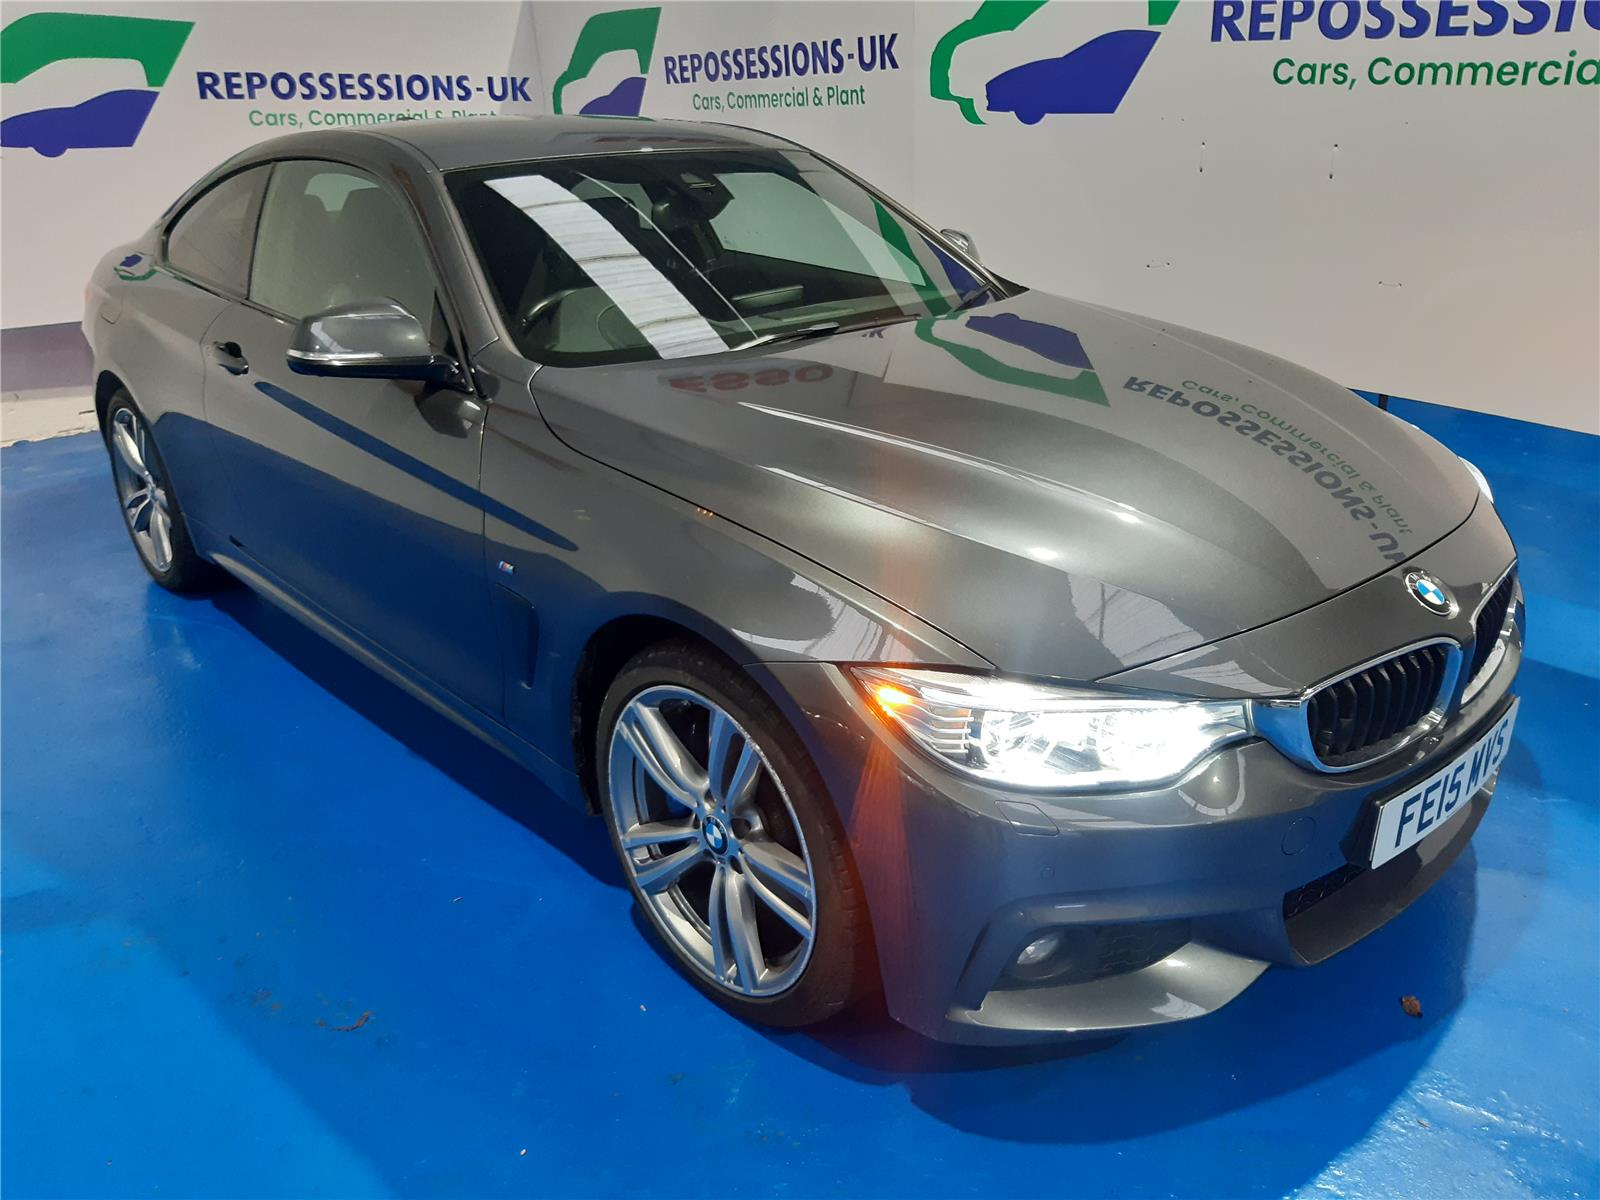 2015 BMW 4 SERIES 435D XDRIVE M SPORT 2993 DIESEL AUTOMATIC 8 Speed 2 DOOR COUPE